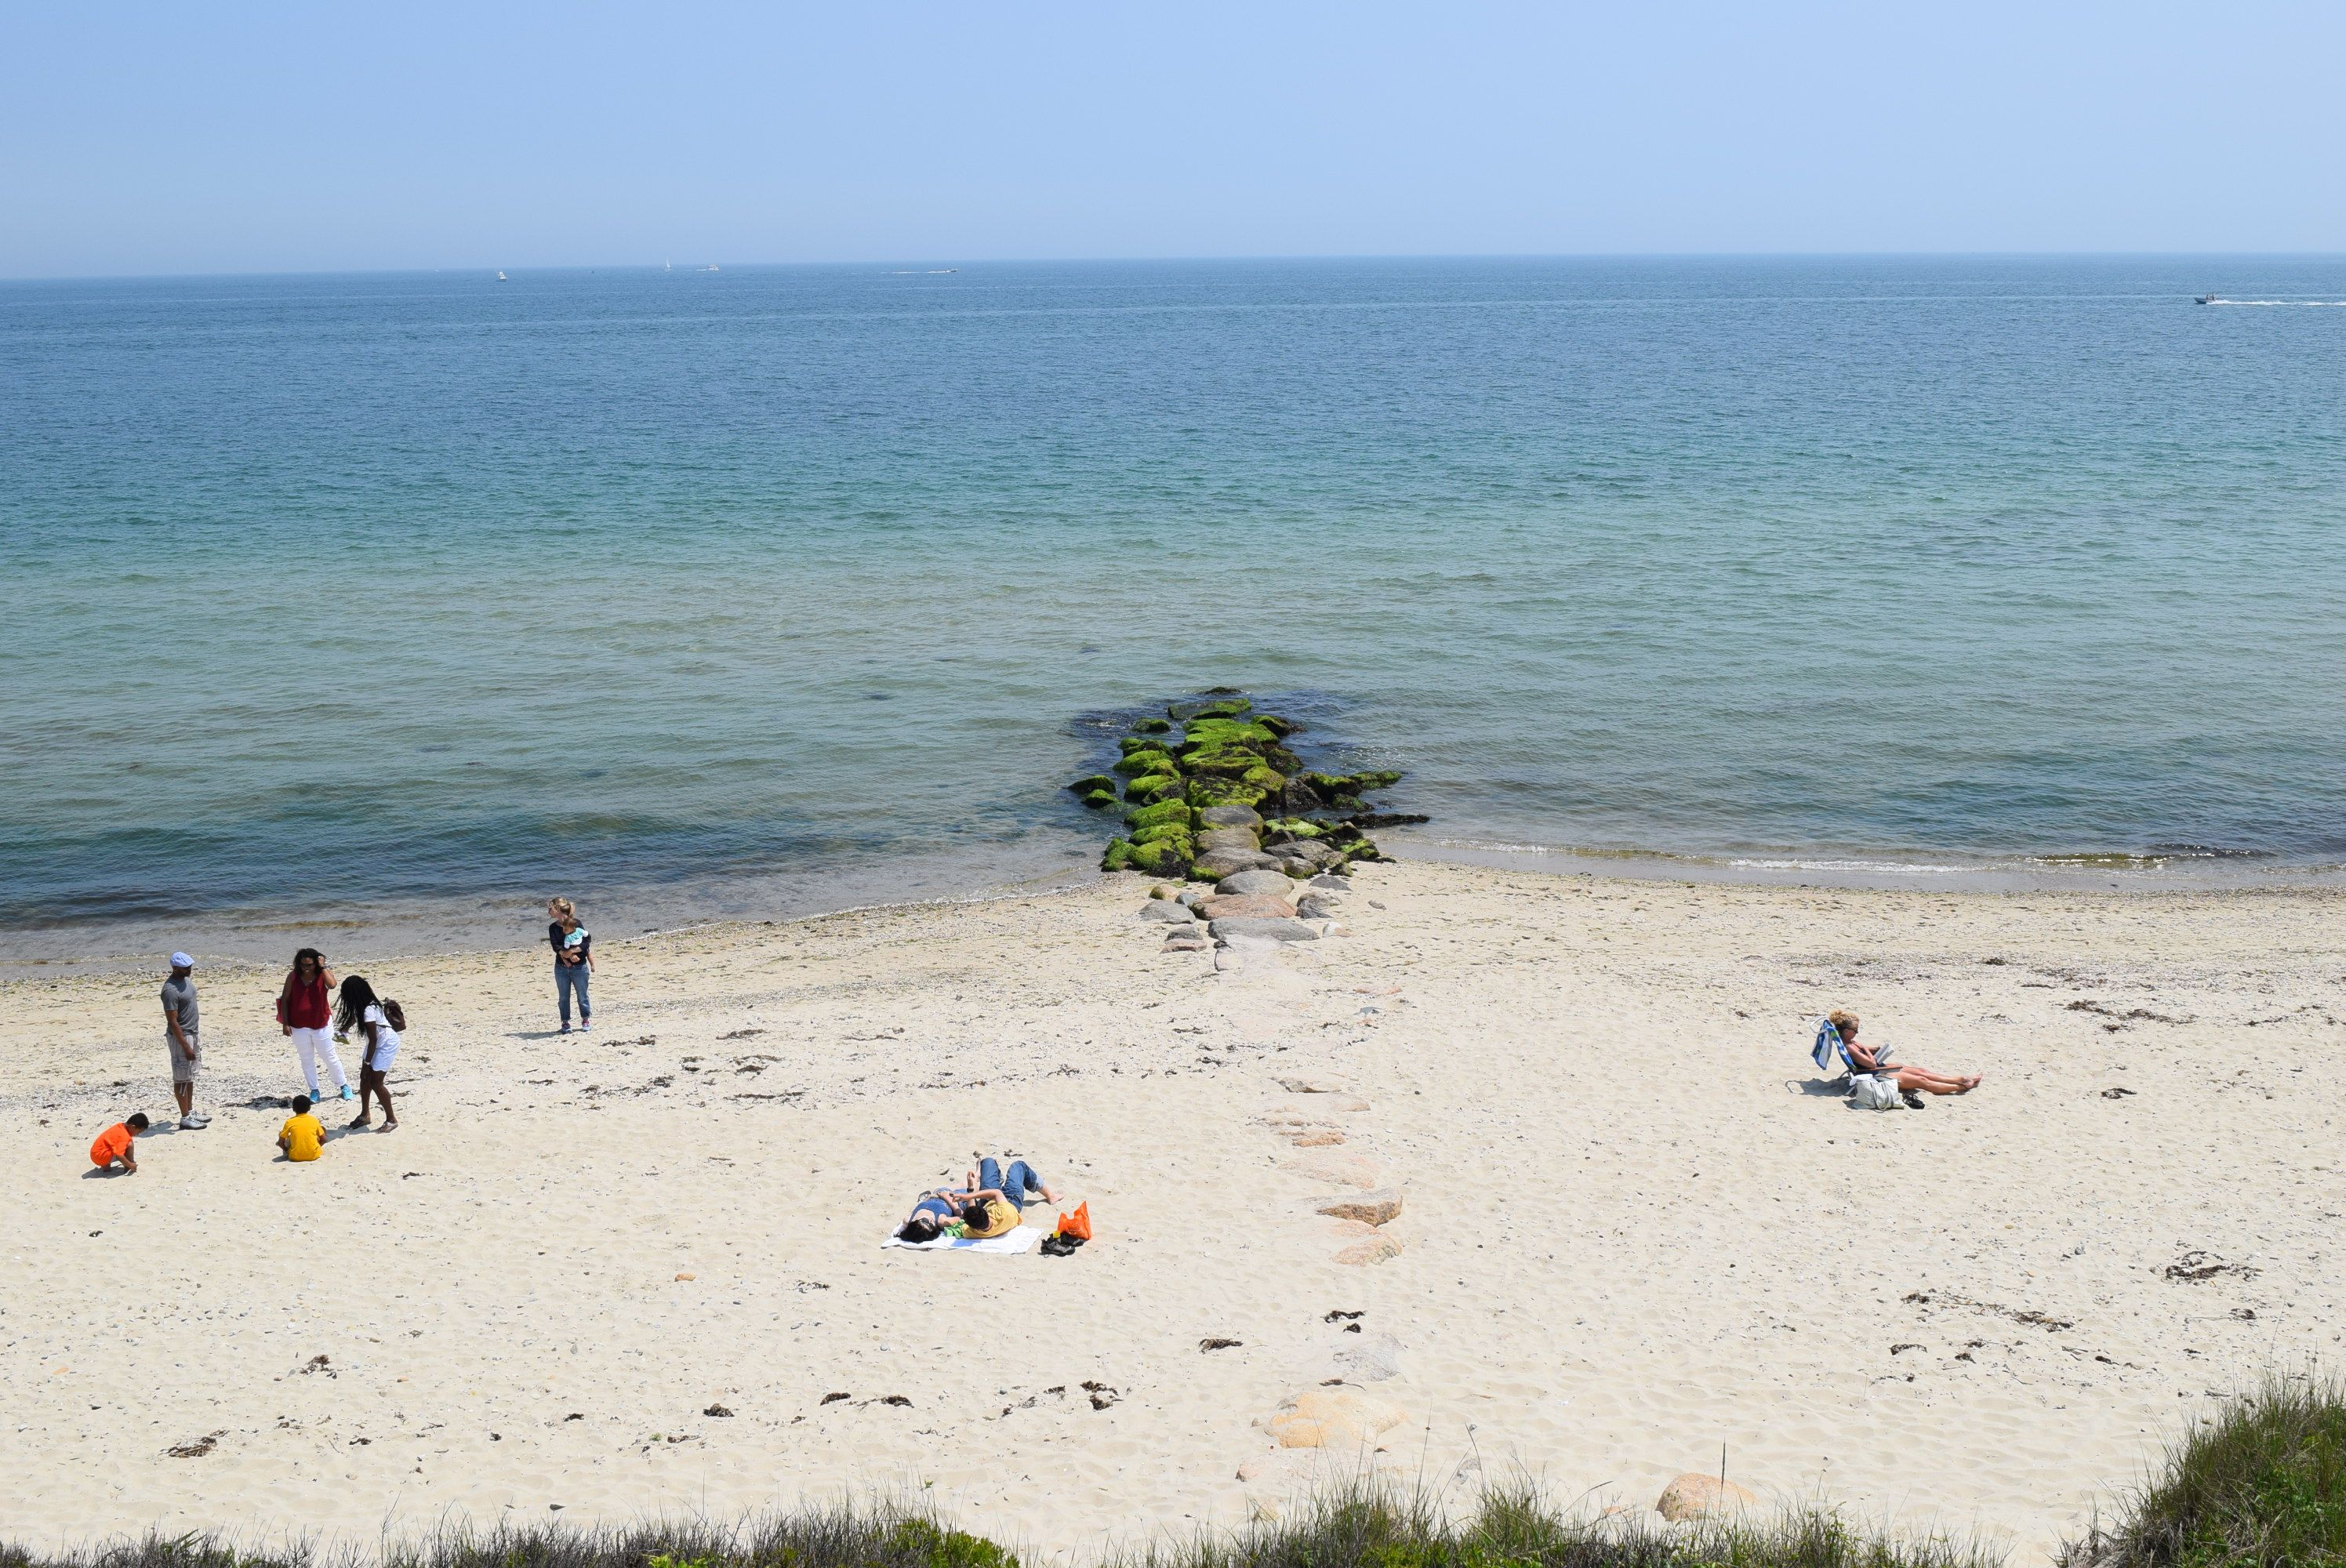 Oaks Bluff Beach in Martha's Vineyard, Massachusetts.